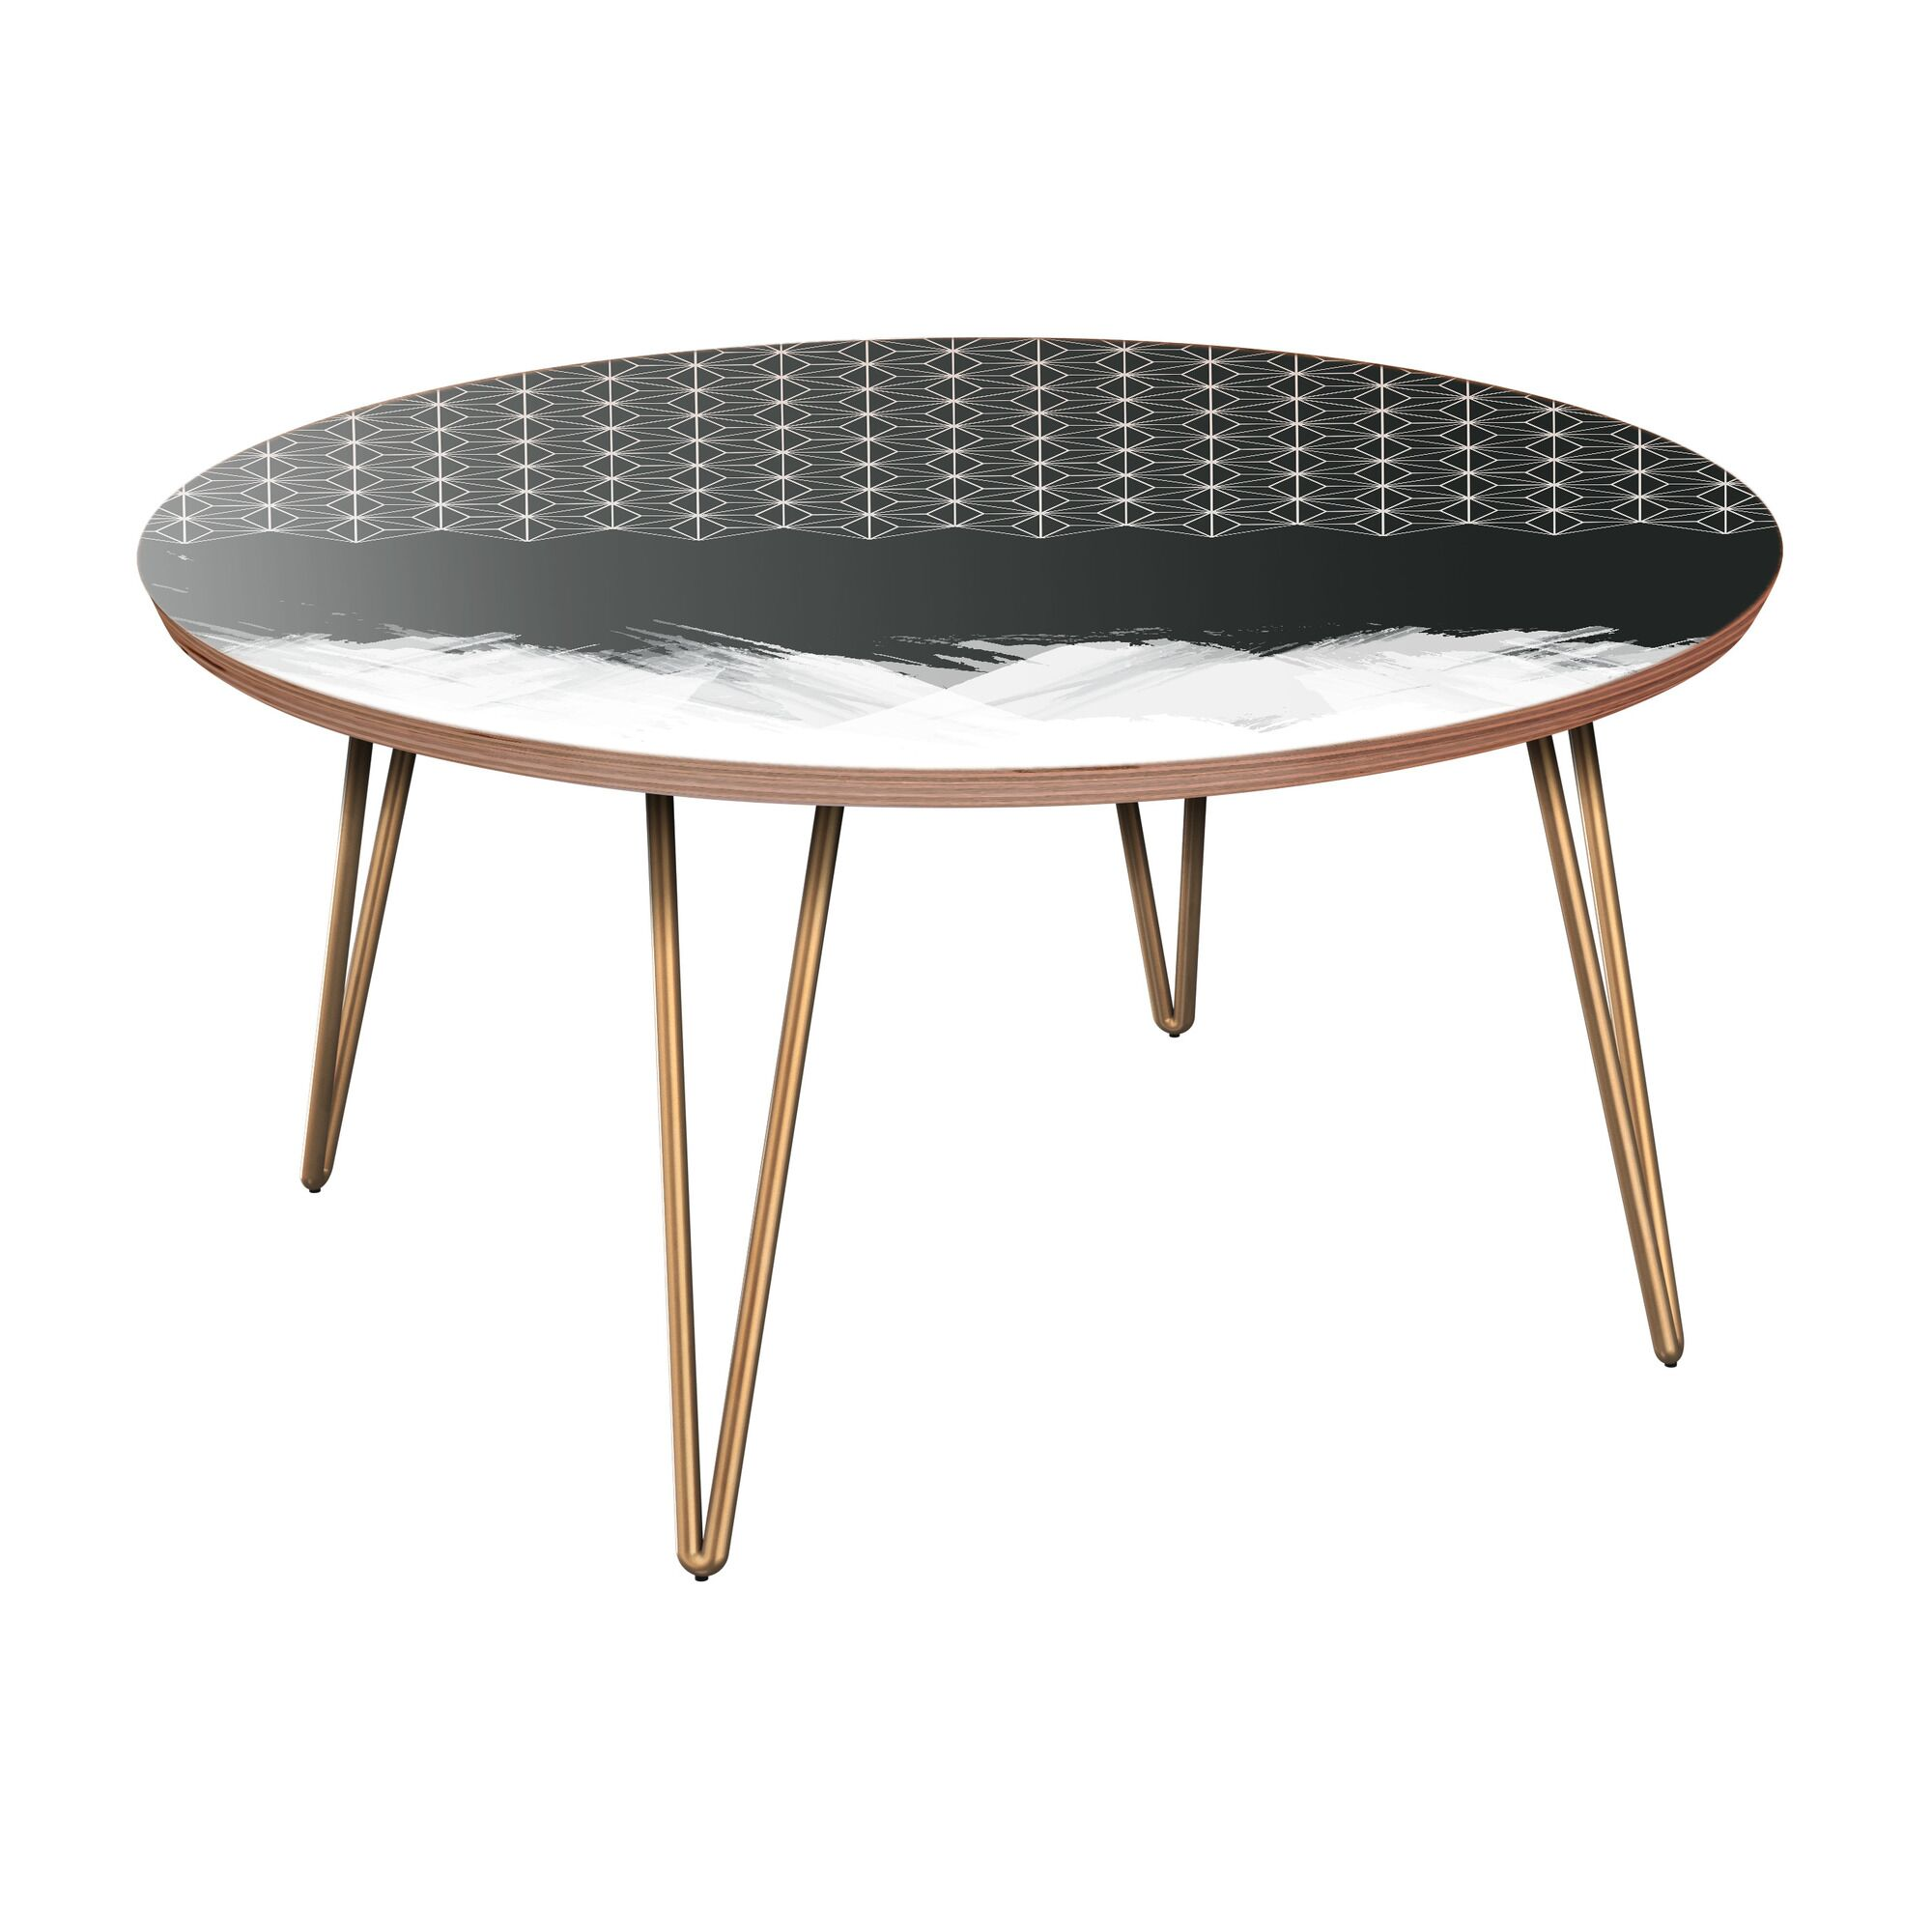 Esters Coffee Table Table Base Color: Brass, Table Top Color: Walnut